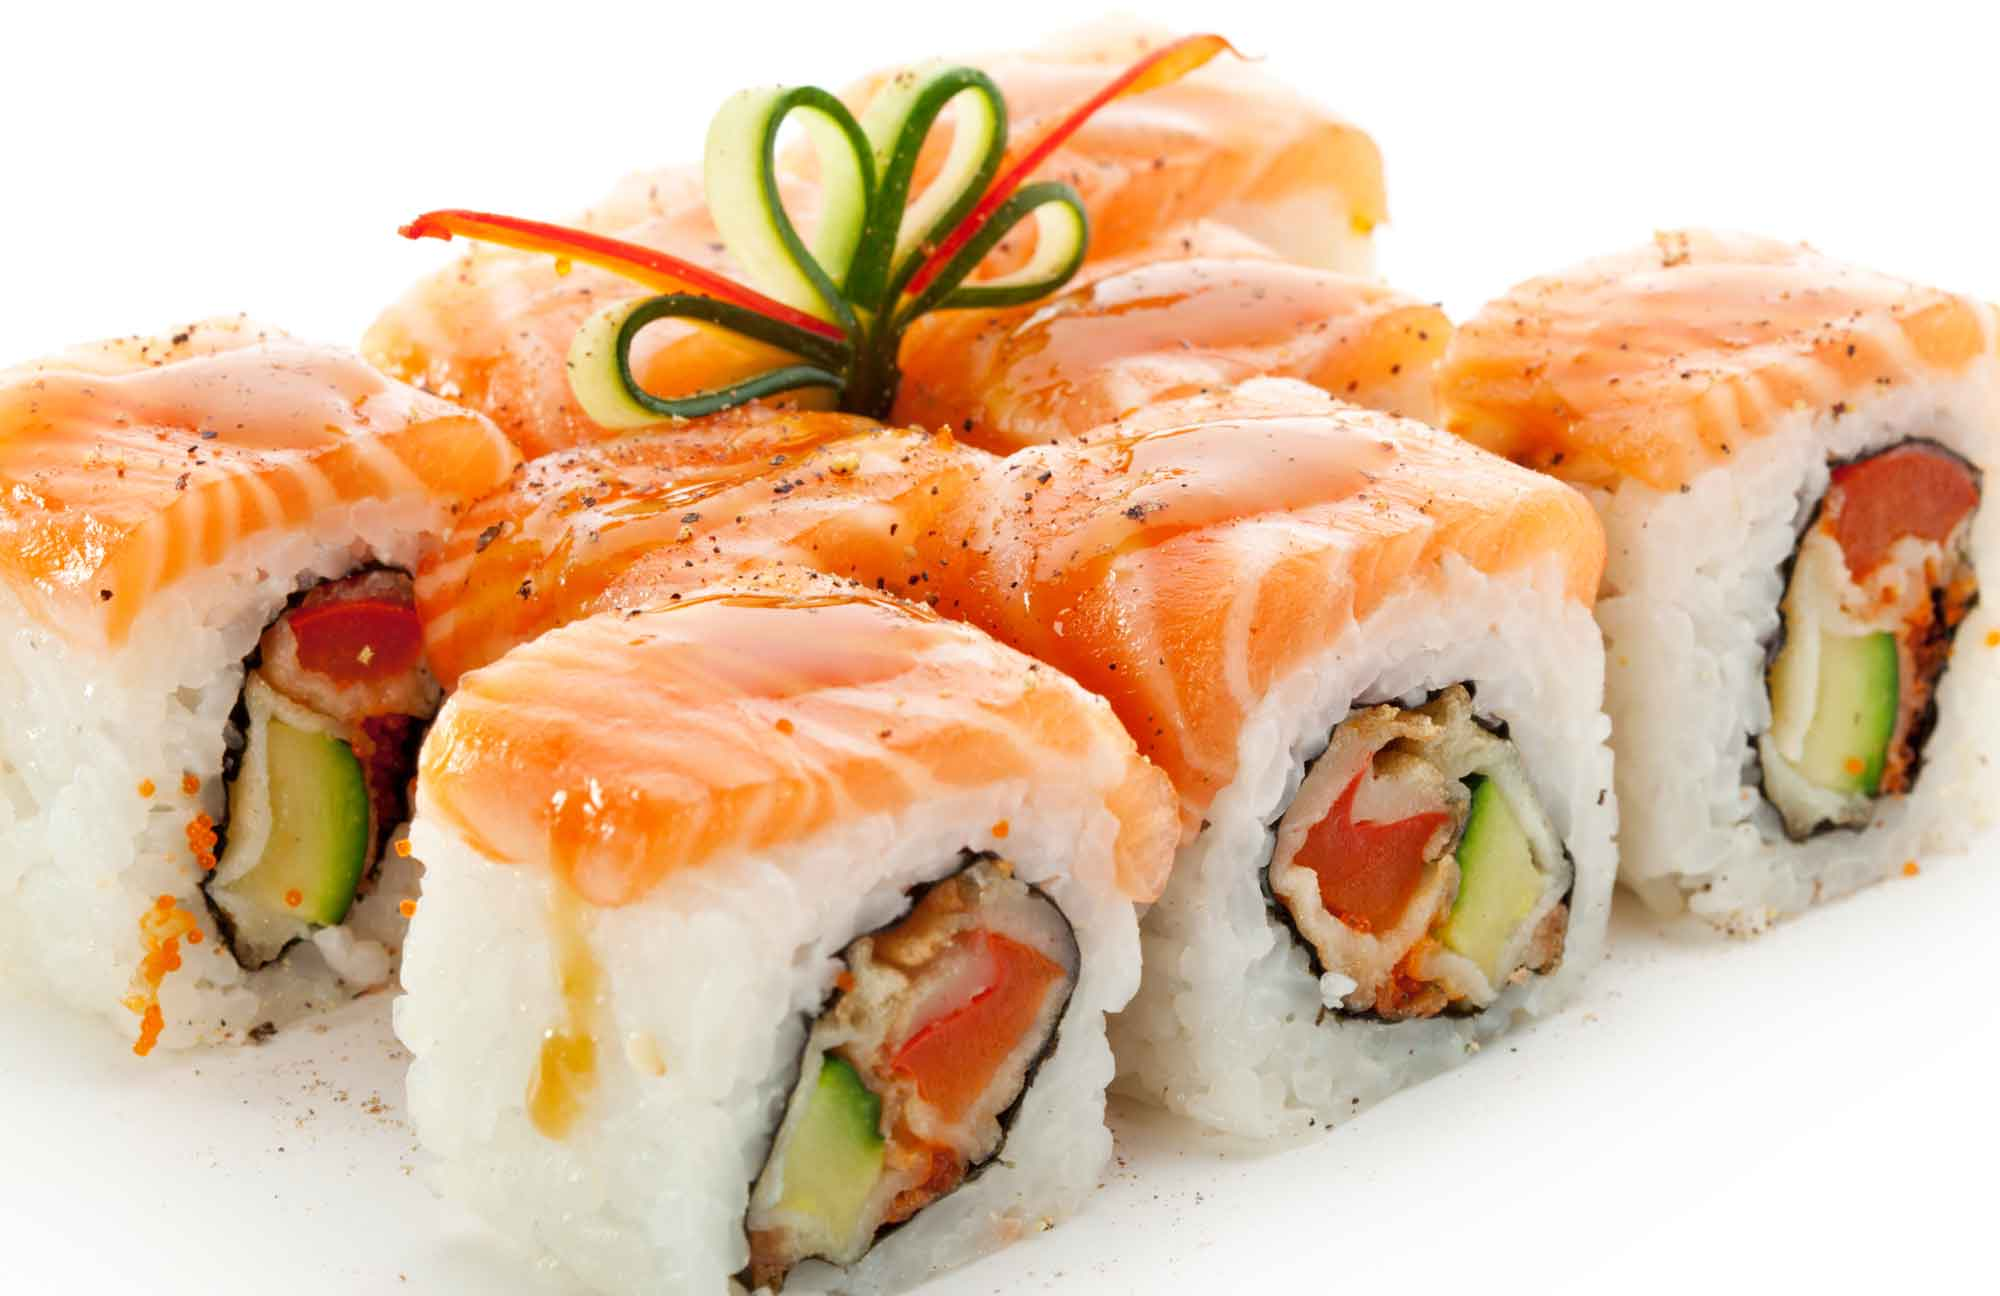 http://www.bellaginacafe.com/wp-content/uploads/sushi_bg_web.jpg